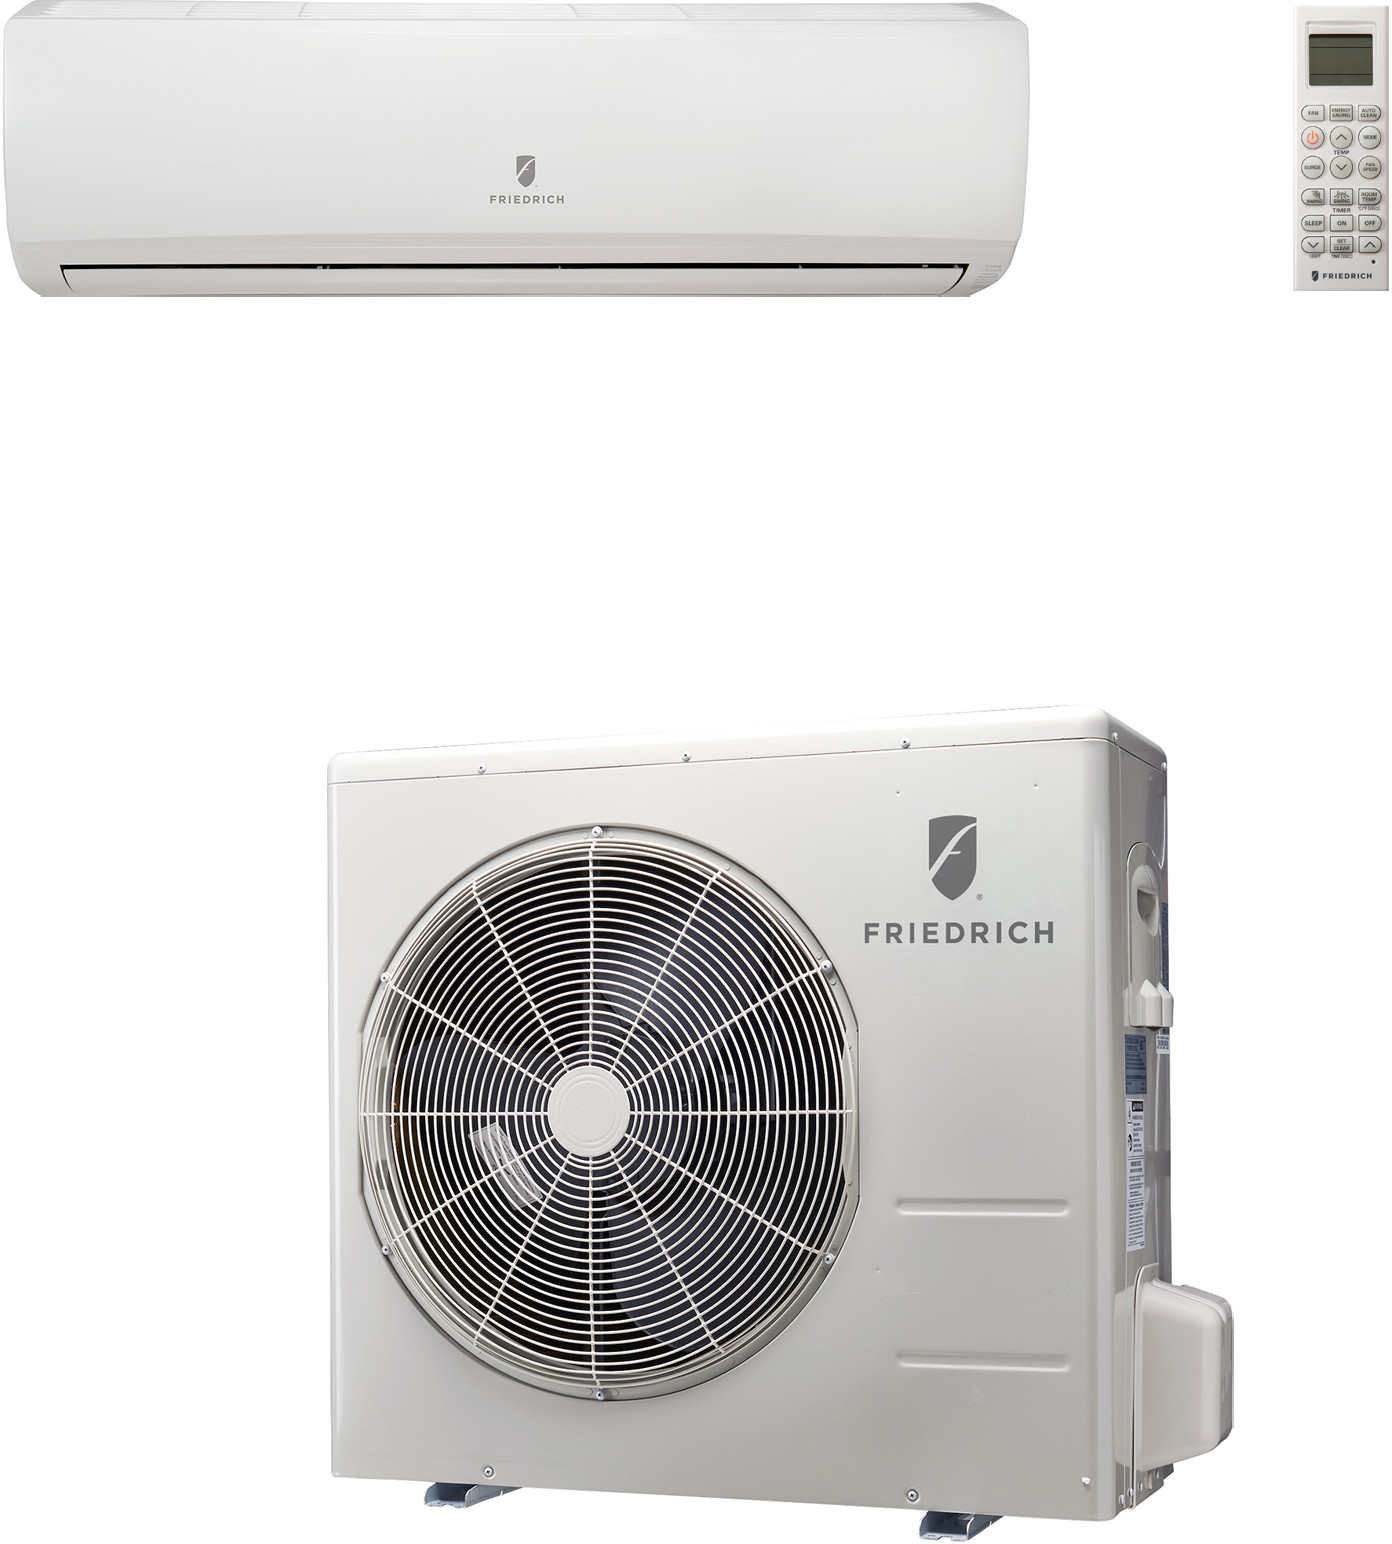 Friedrich 30,000 BTU Single Zone Ductless Split System M30YJ